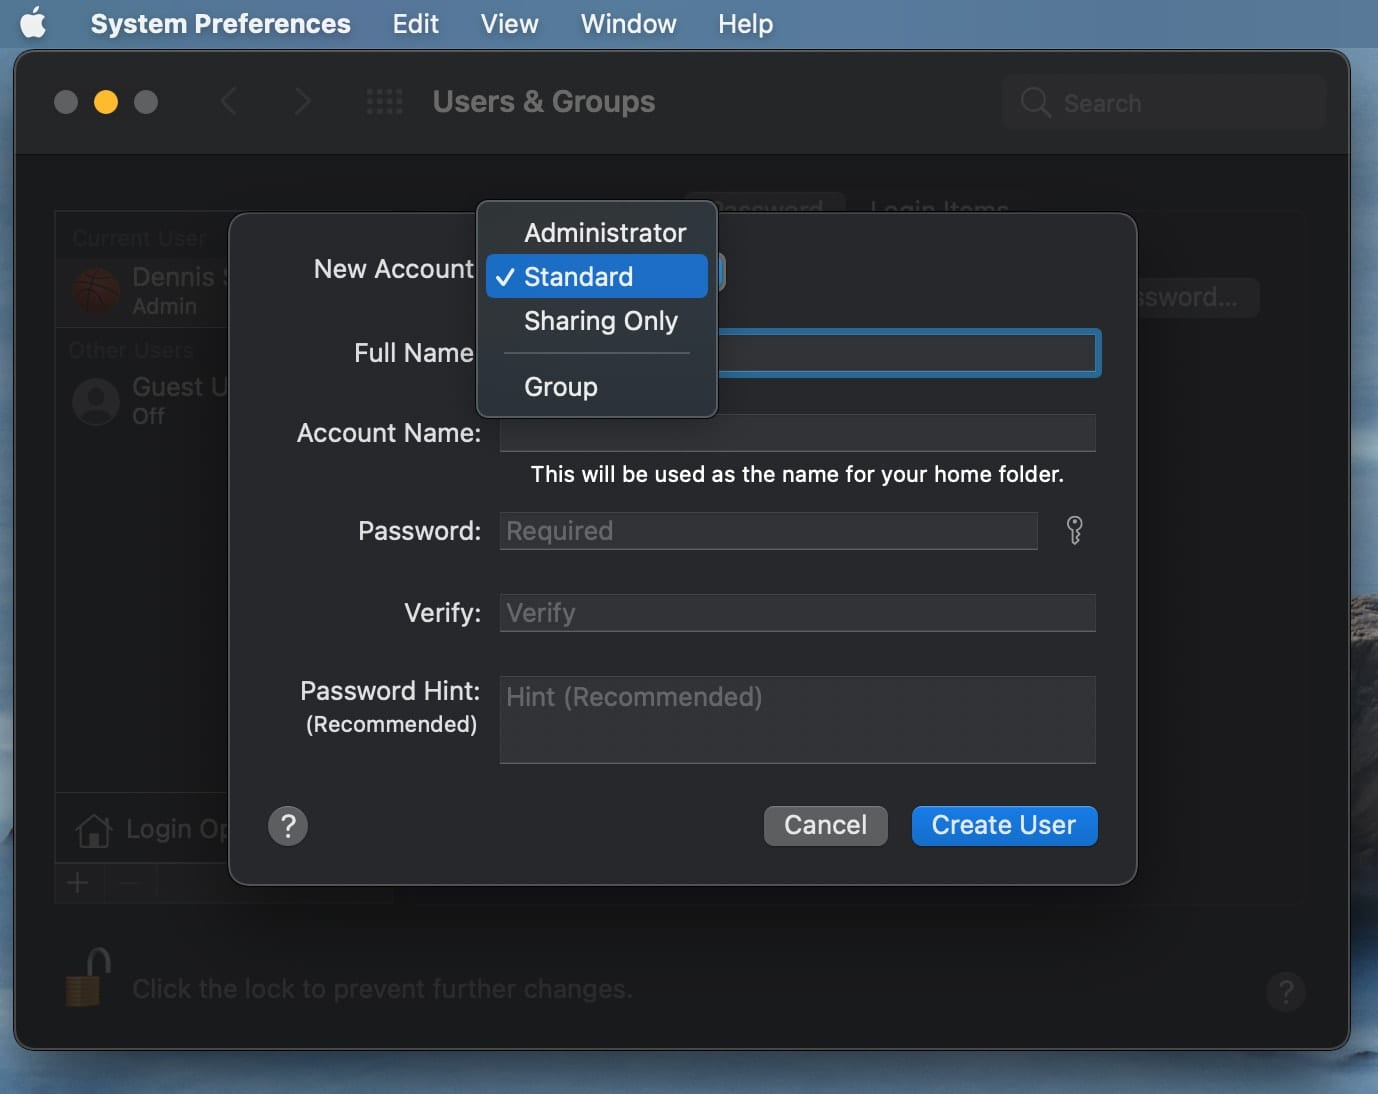 macOS Big Sur Users & Groups Preferences – Admin Account